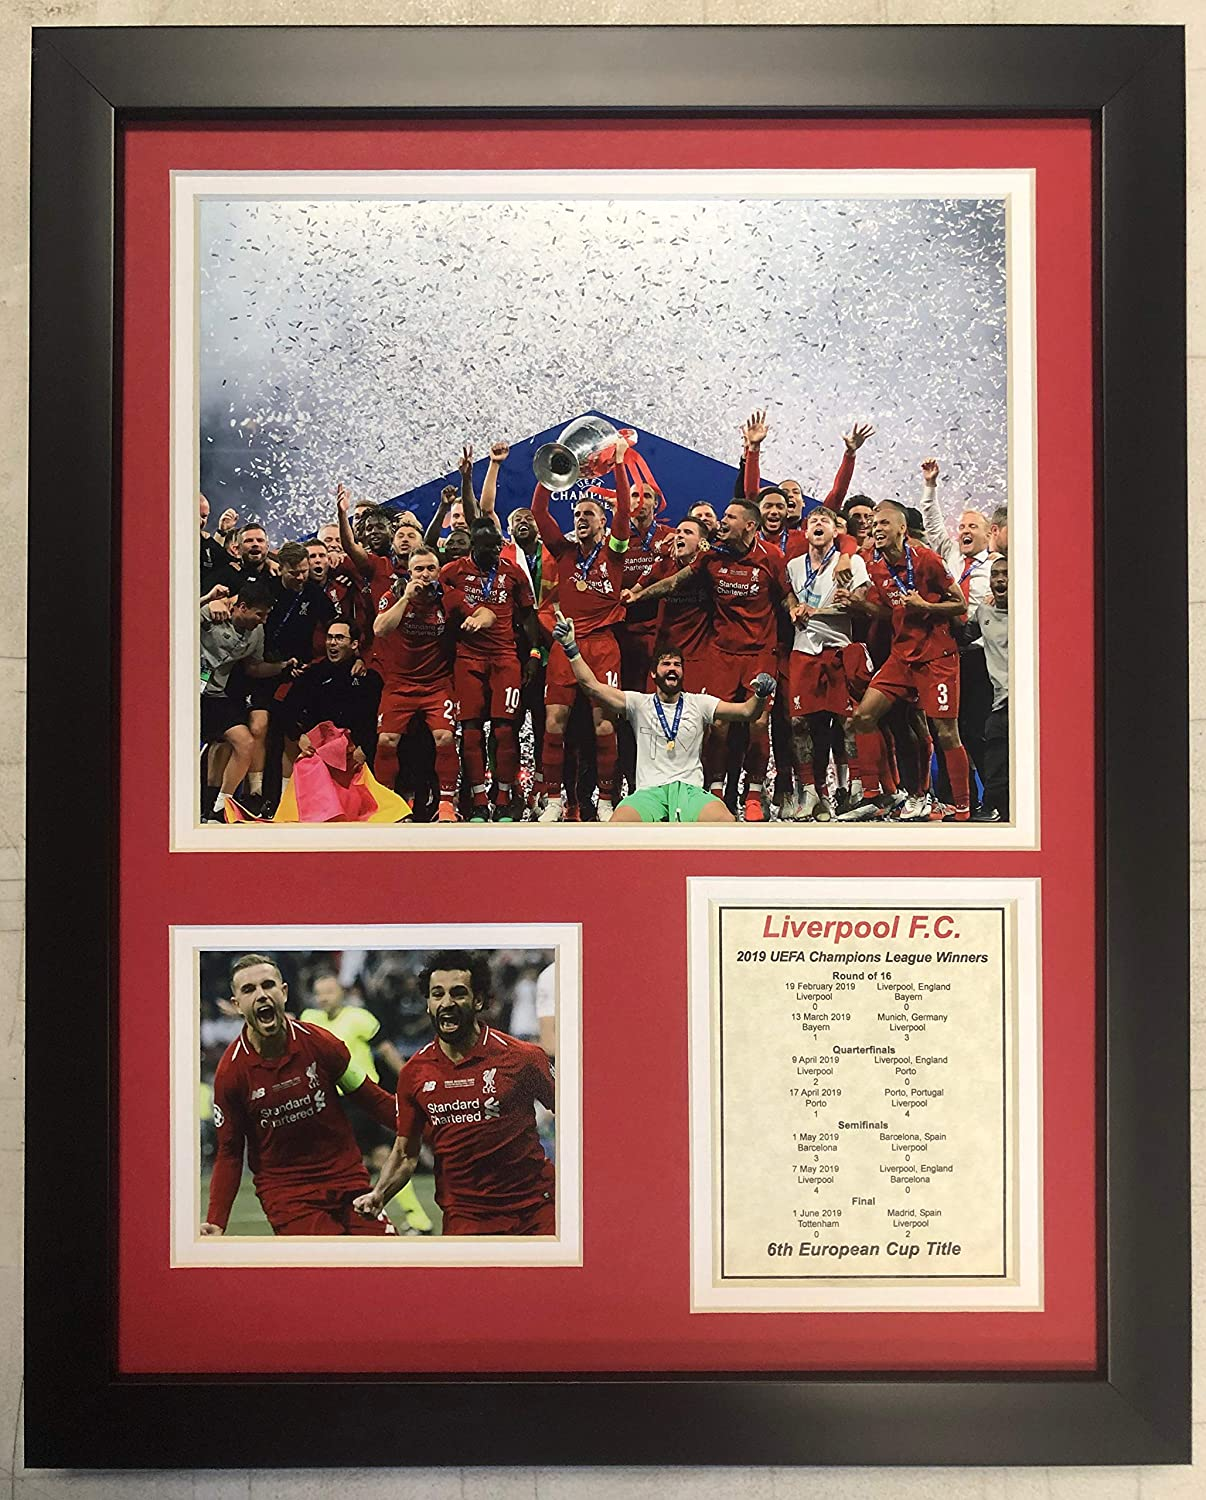 "Liverpool FC 2019 UEFA Champions League Champions Collectible | Framed Photo Collage Wall Art Decor - 12"" x 15"" 